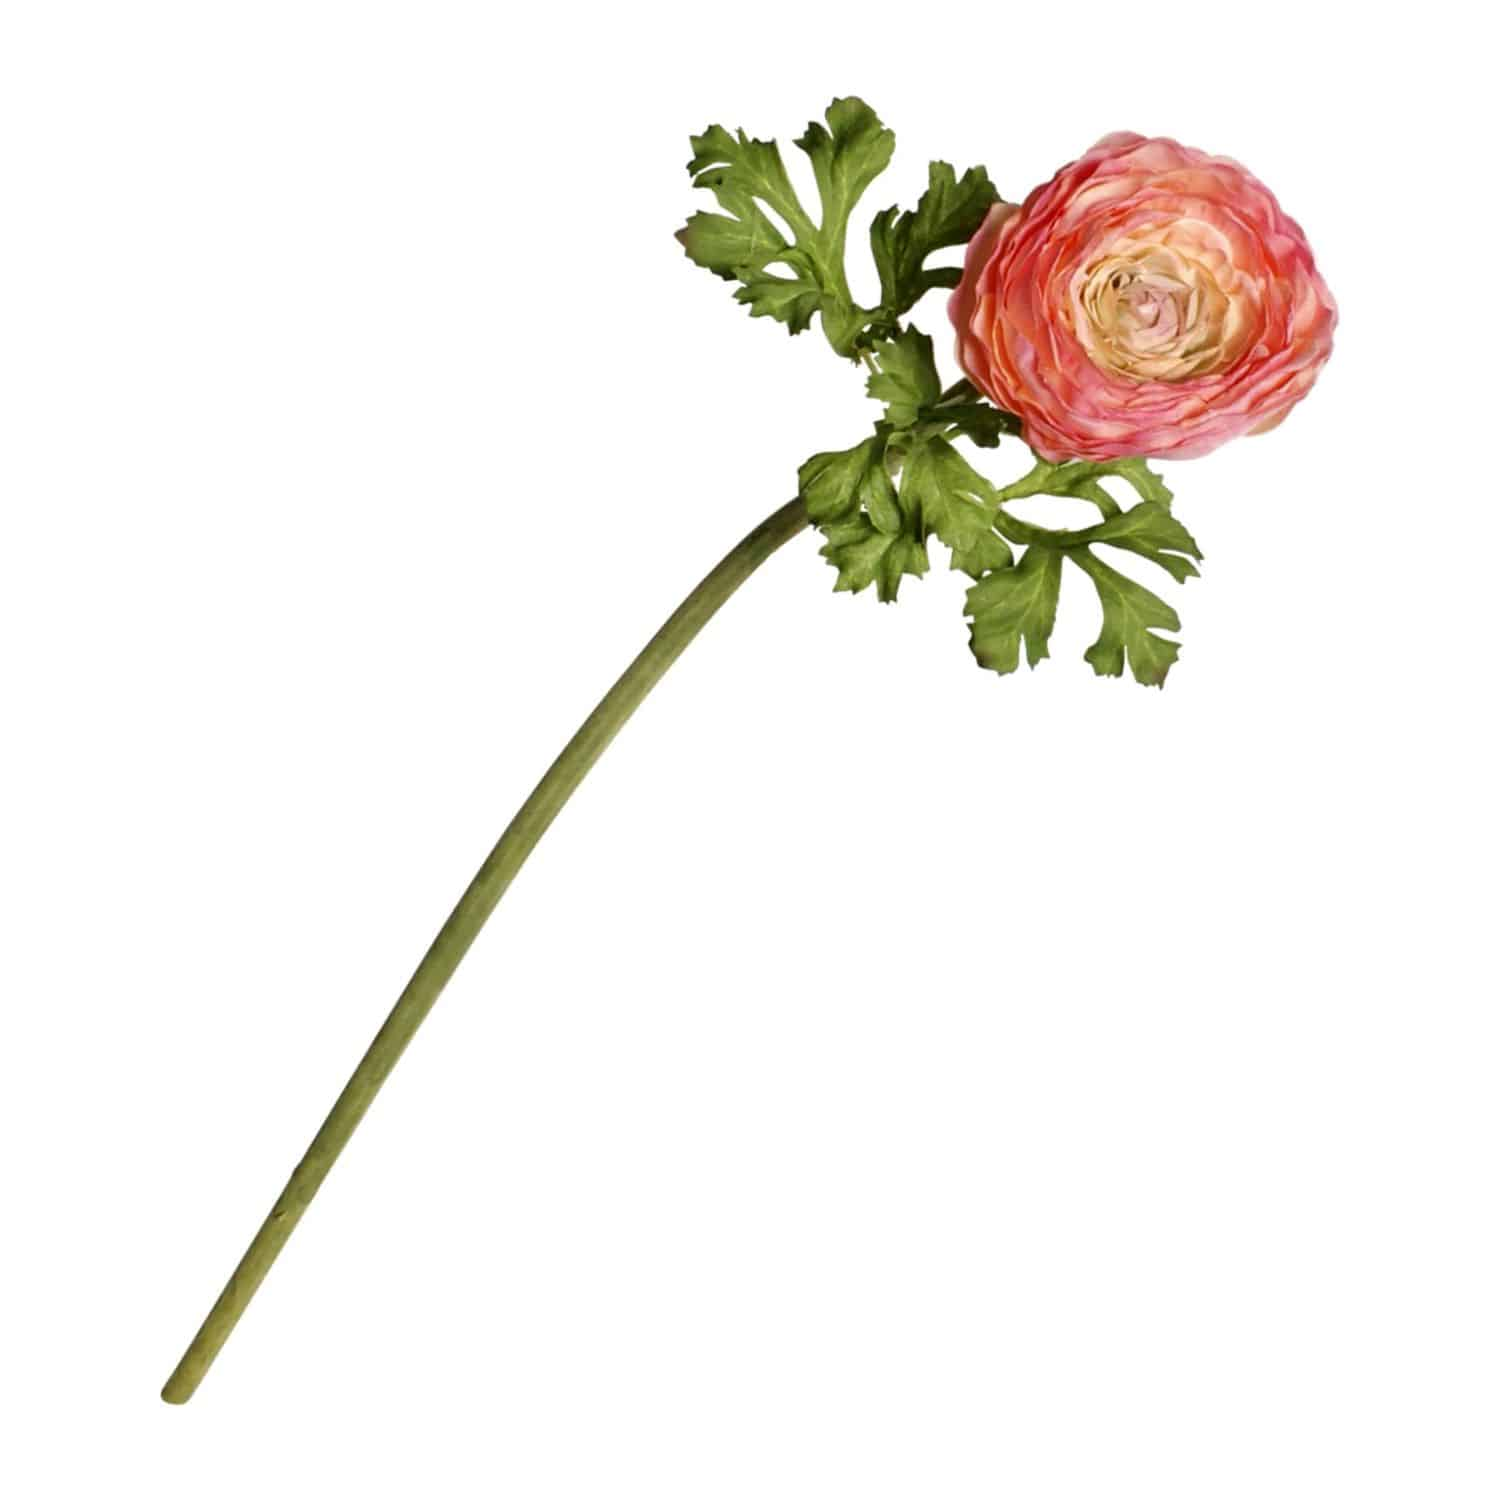 Fully bloomed ranunculus silk flower is wonderfully designed to show this flower at its finest. Pink to peach colour is superbly lifelike with natural tones.